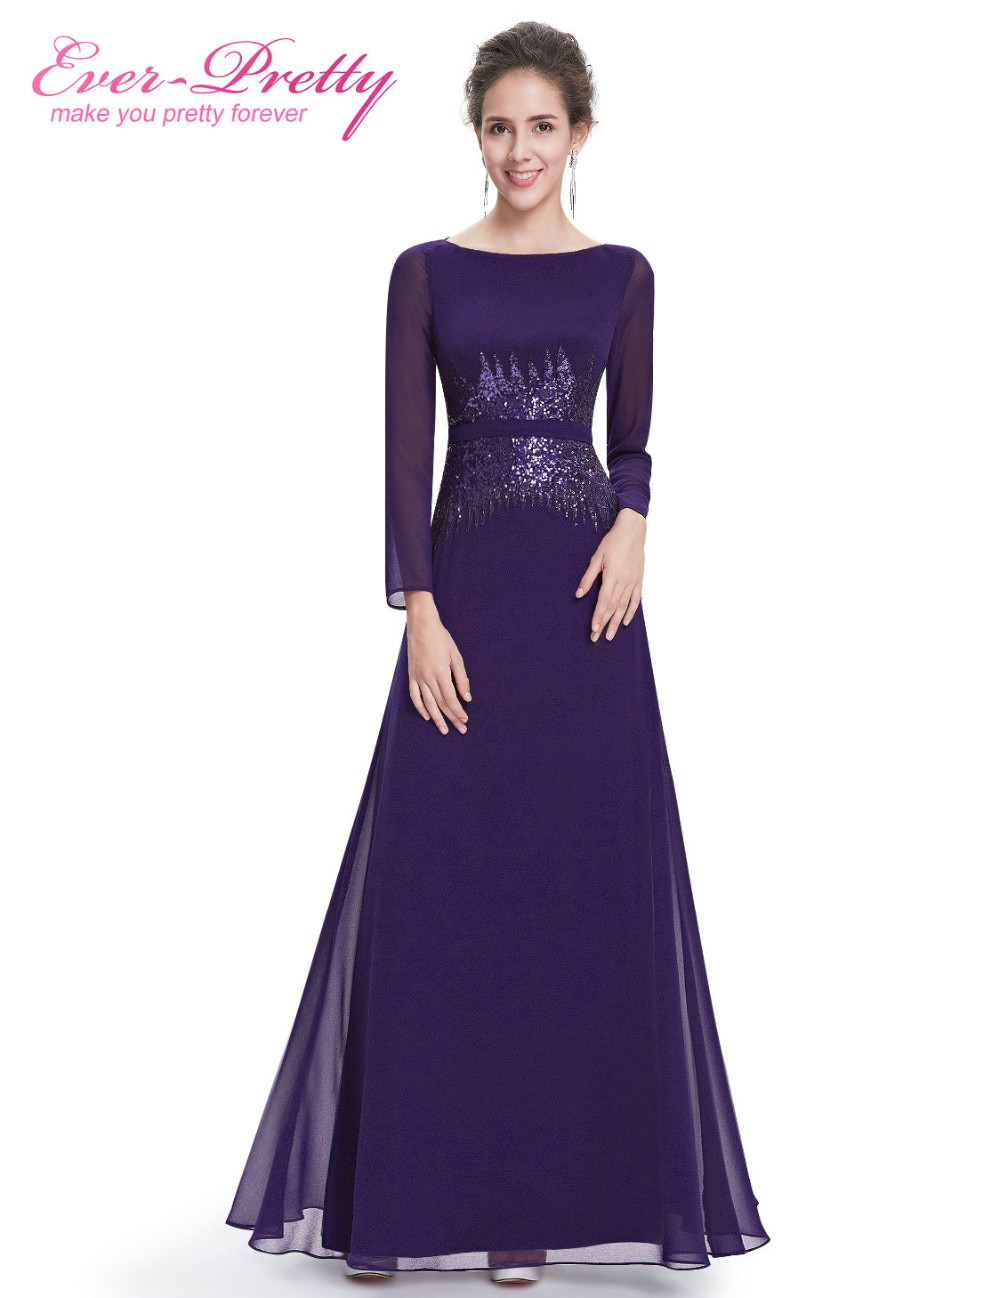 Blue Evening Gown Promotion-Shop for Promotional Blue Evening Gown ...